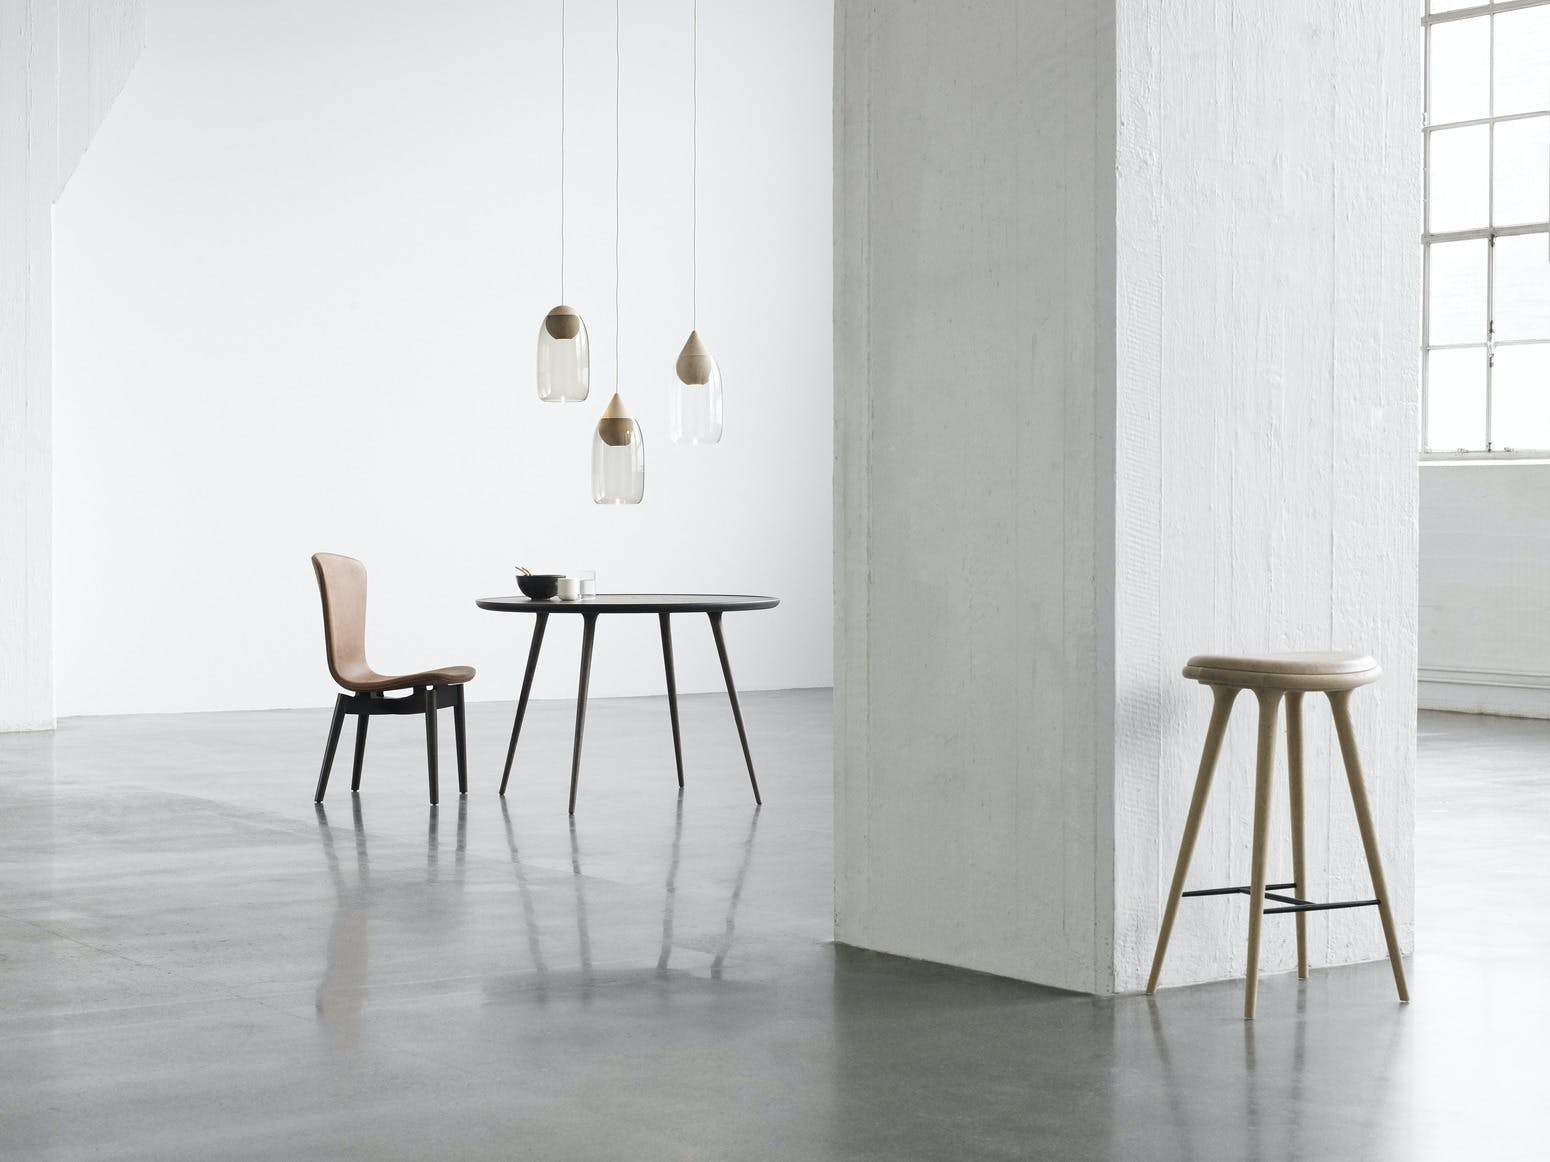 Mater Accent Dining Table Solo Insitu Haute Living